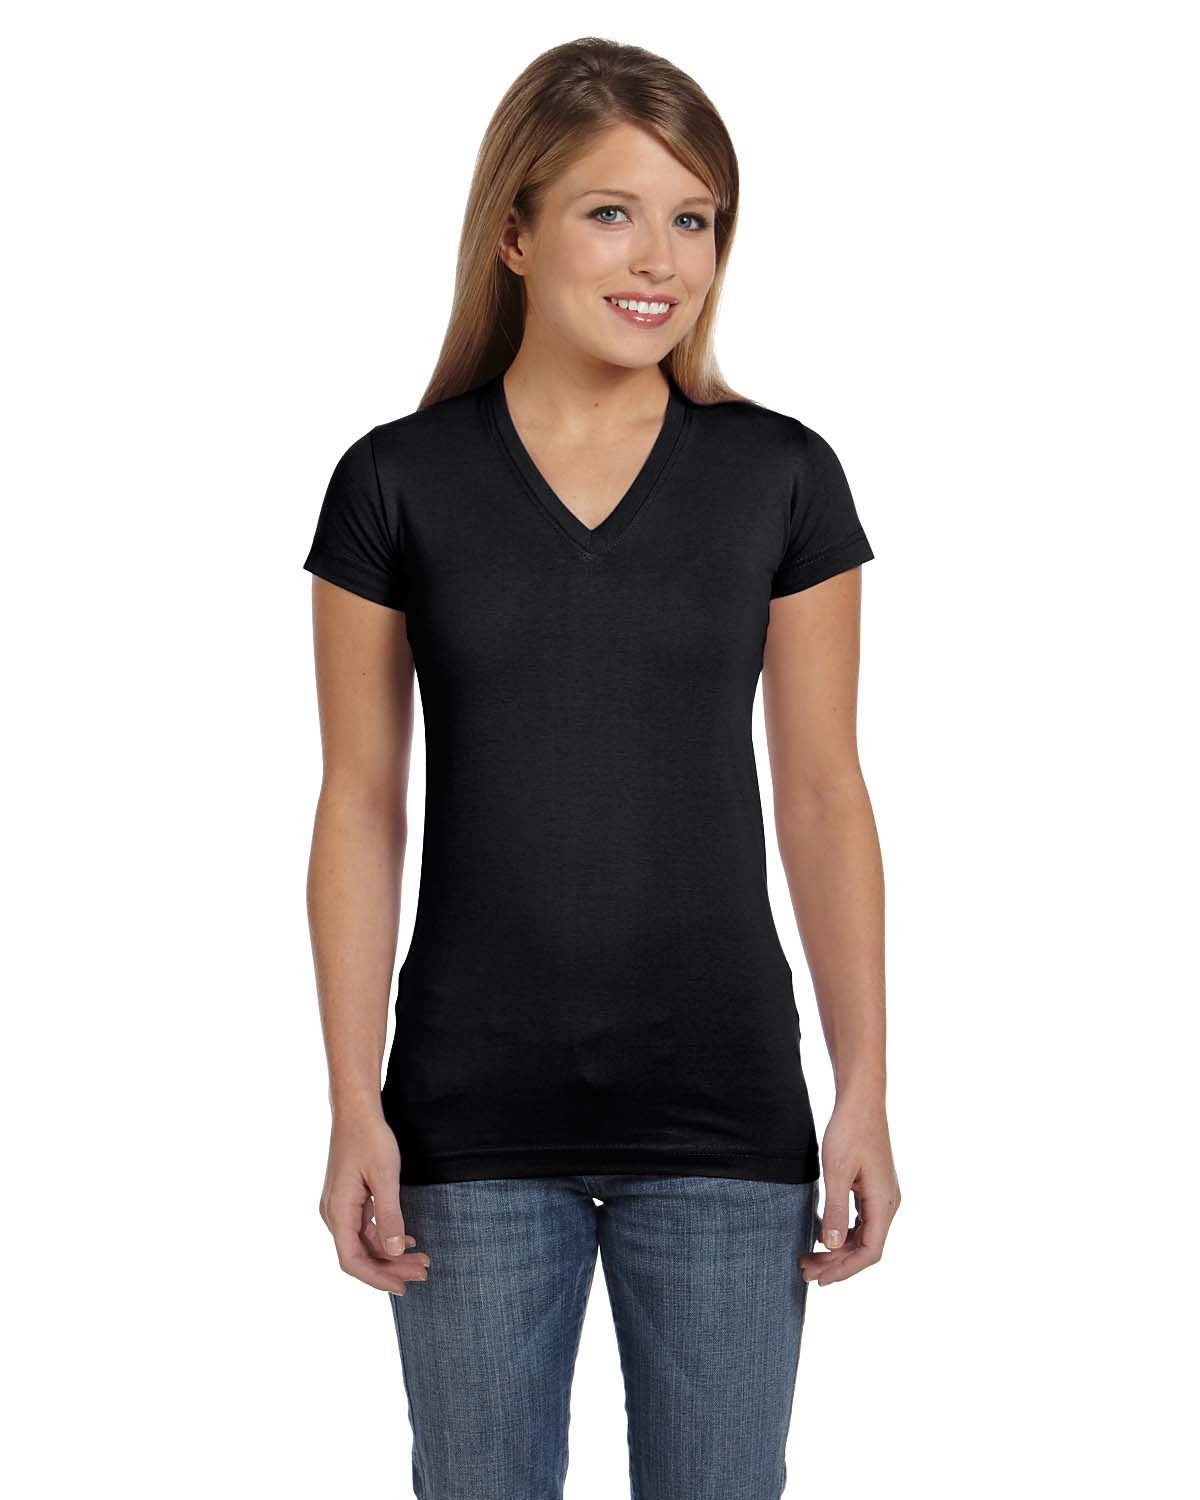 Ladies Junior Fitted V-Neck T-Shirt - Womens Uniforms-4046